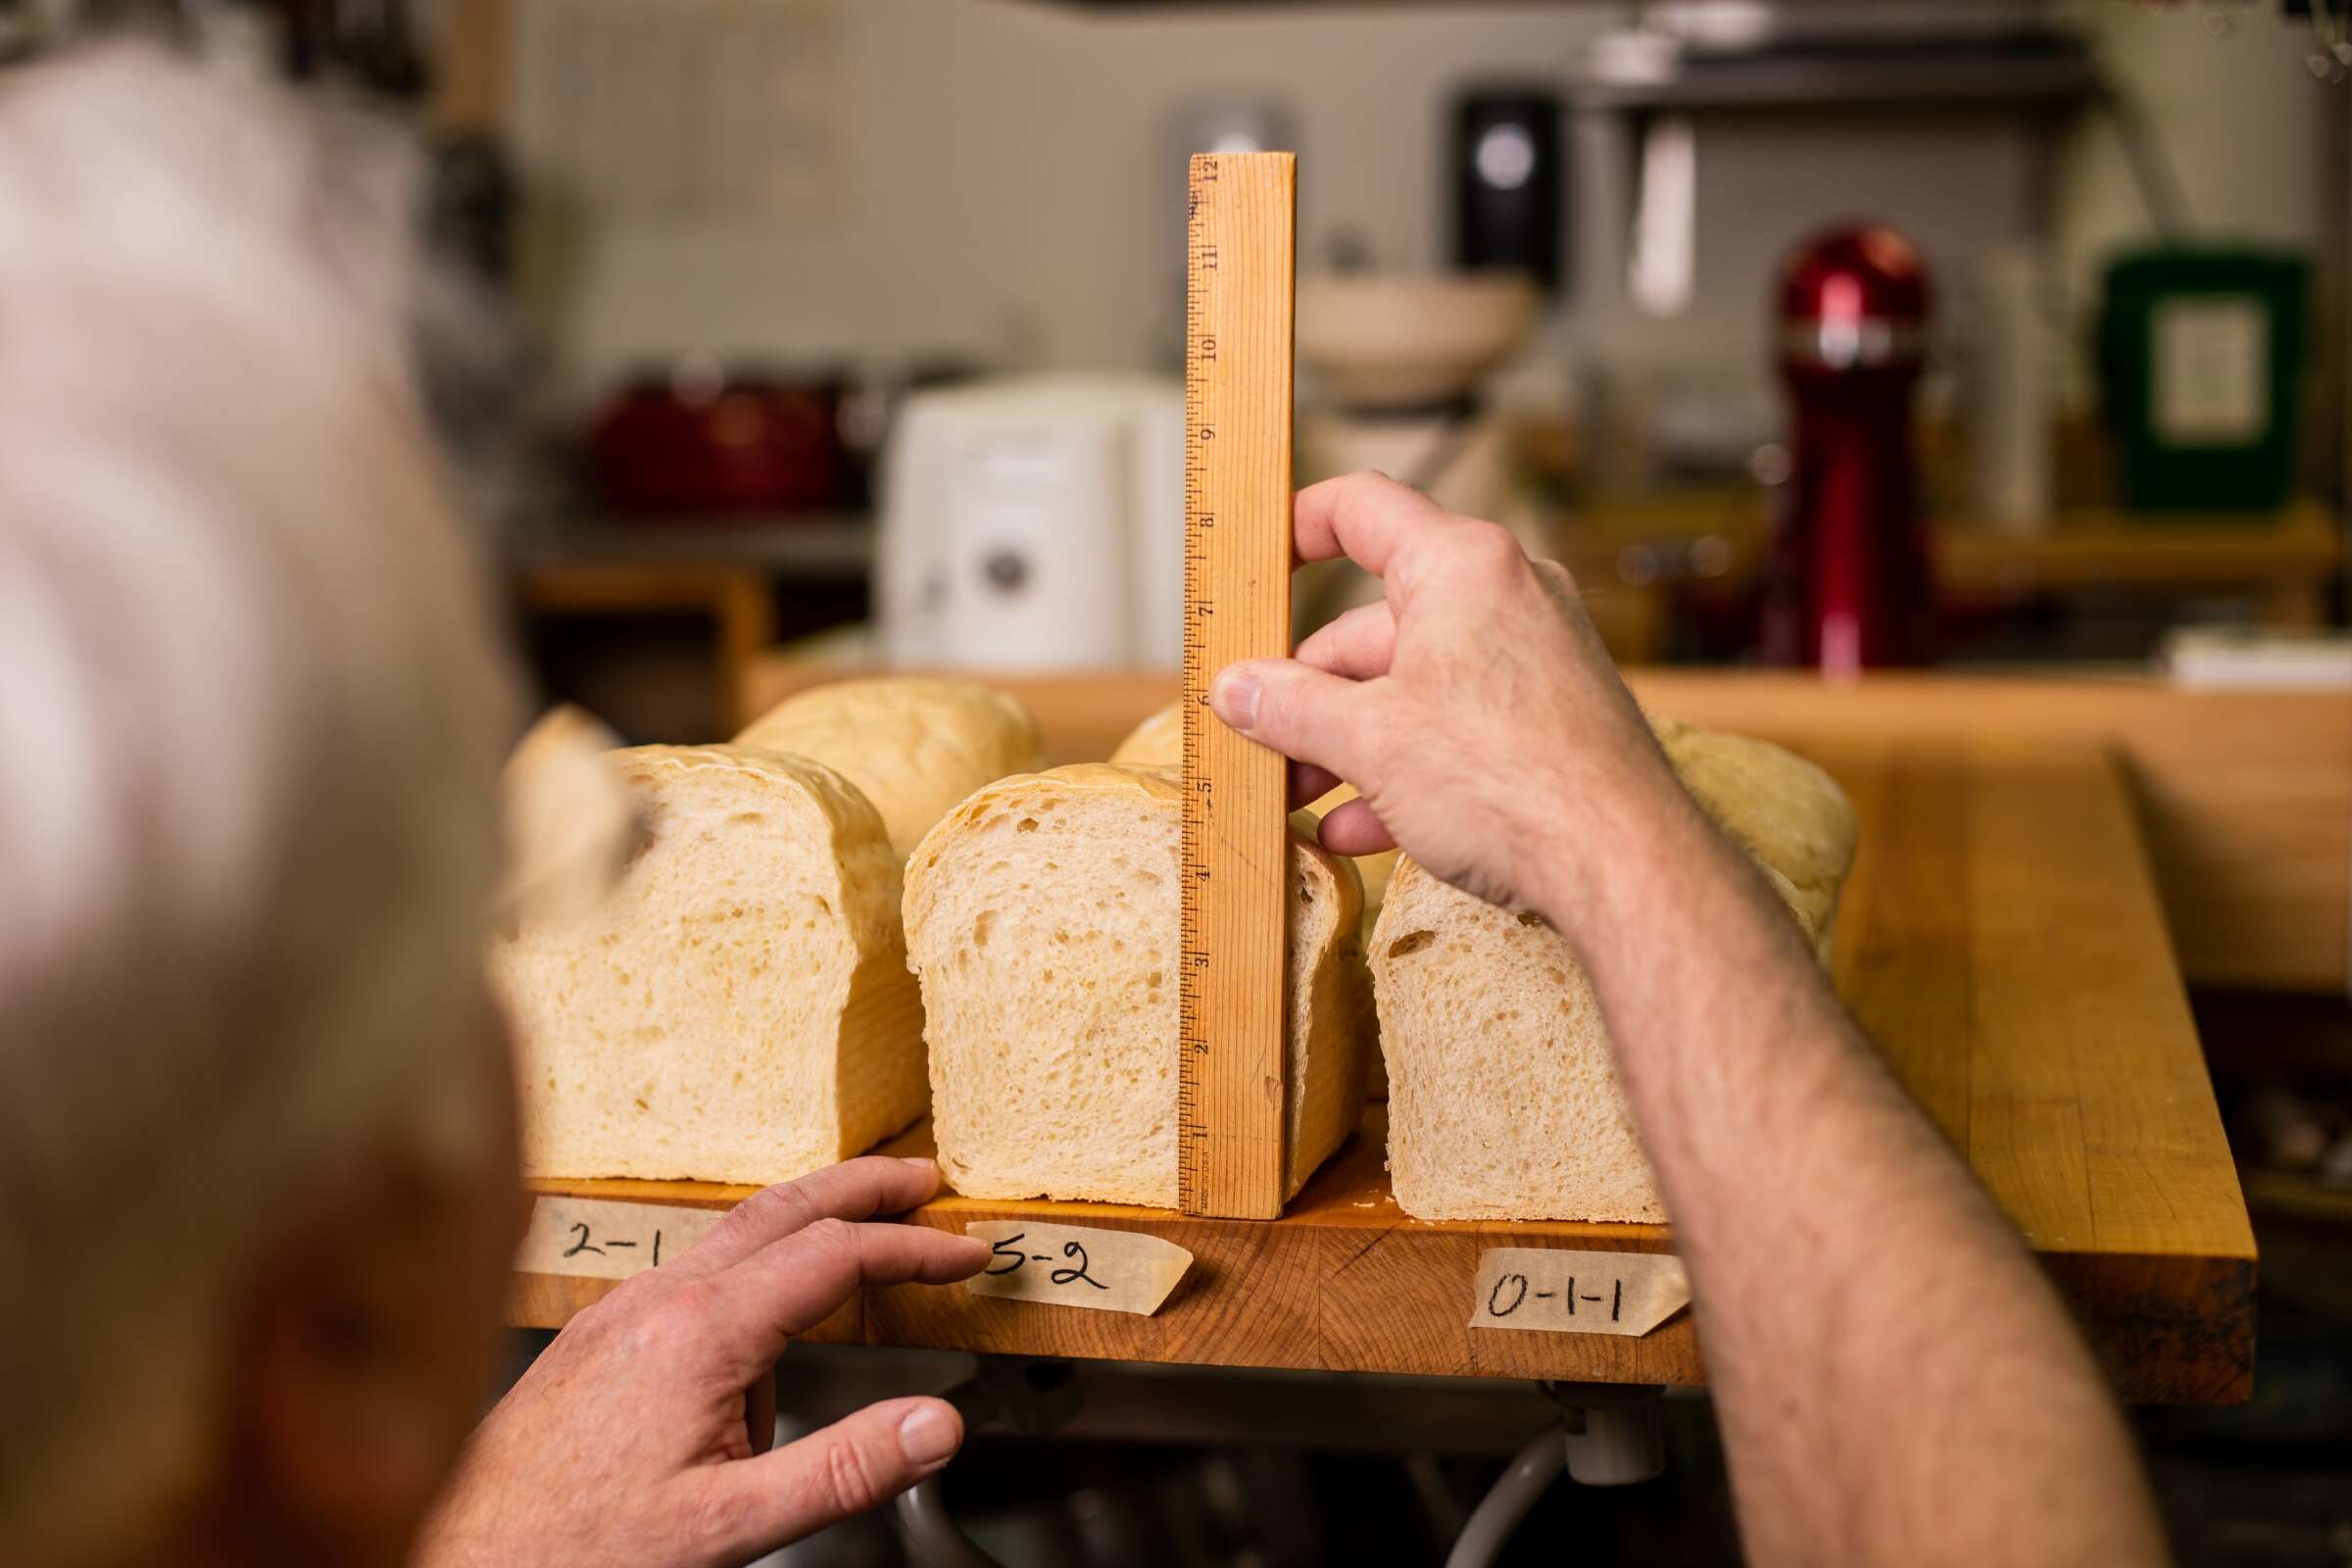 Frank measures loaves of bread in the King Arthur test kitchen